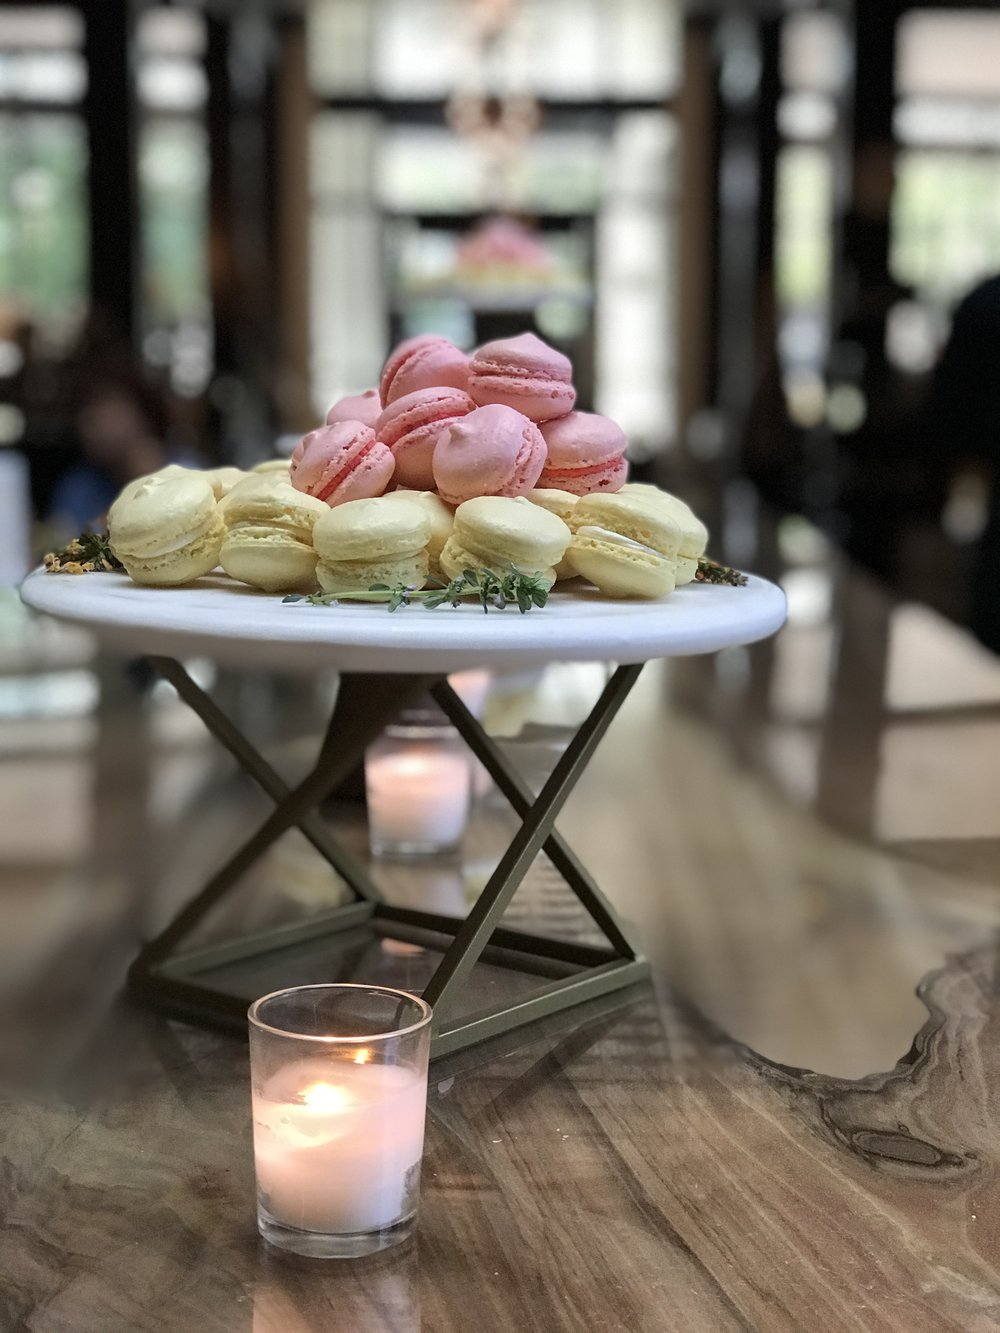 99 macarons on the table... 99 macarons. Take one down, eat it all up, 98 macarons on the table.